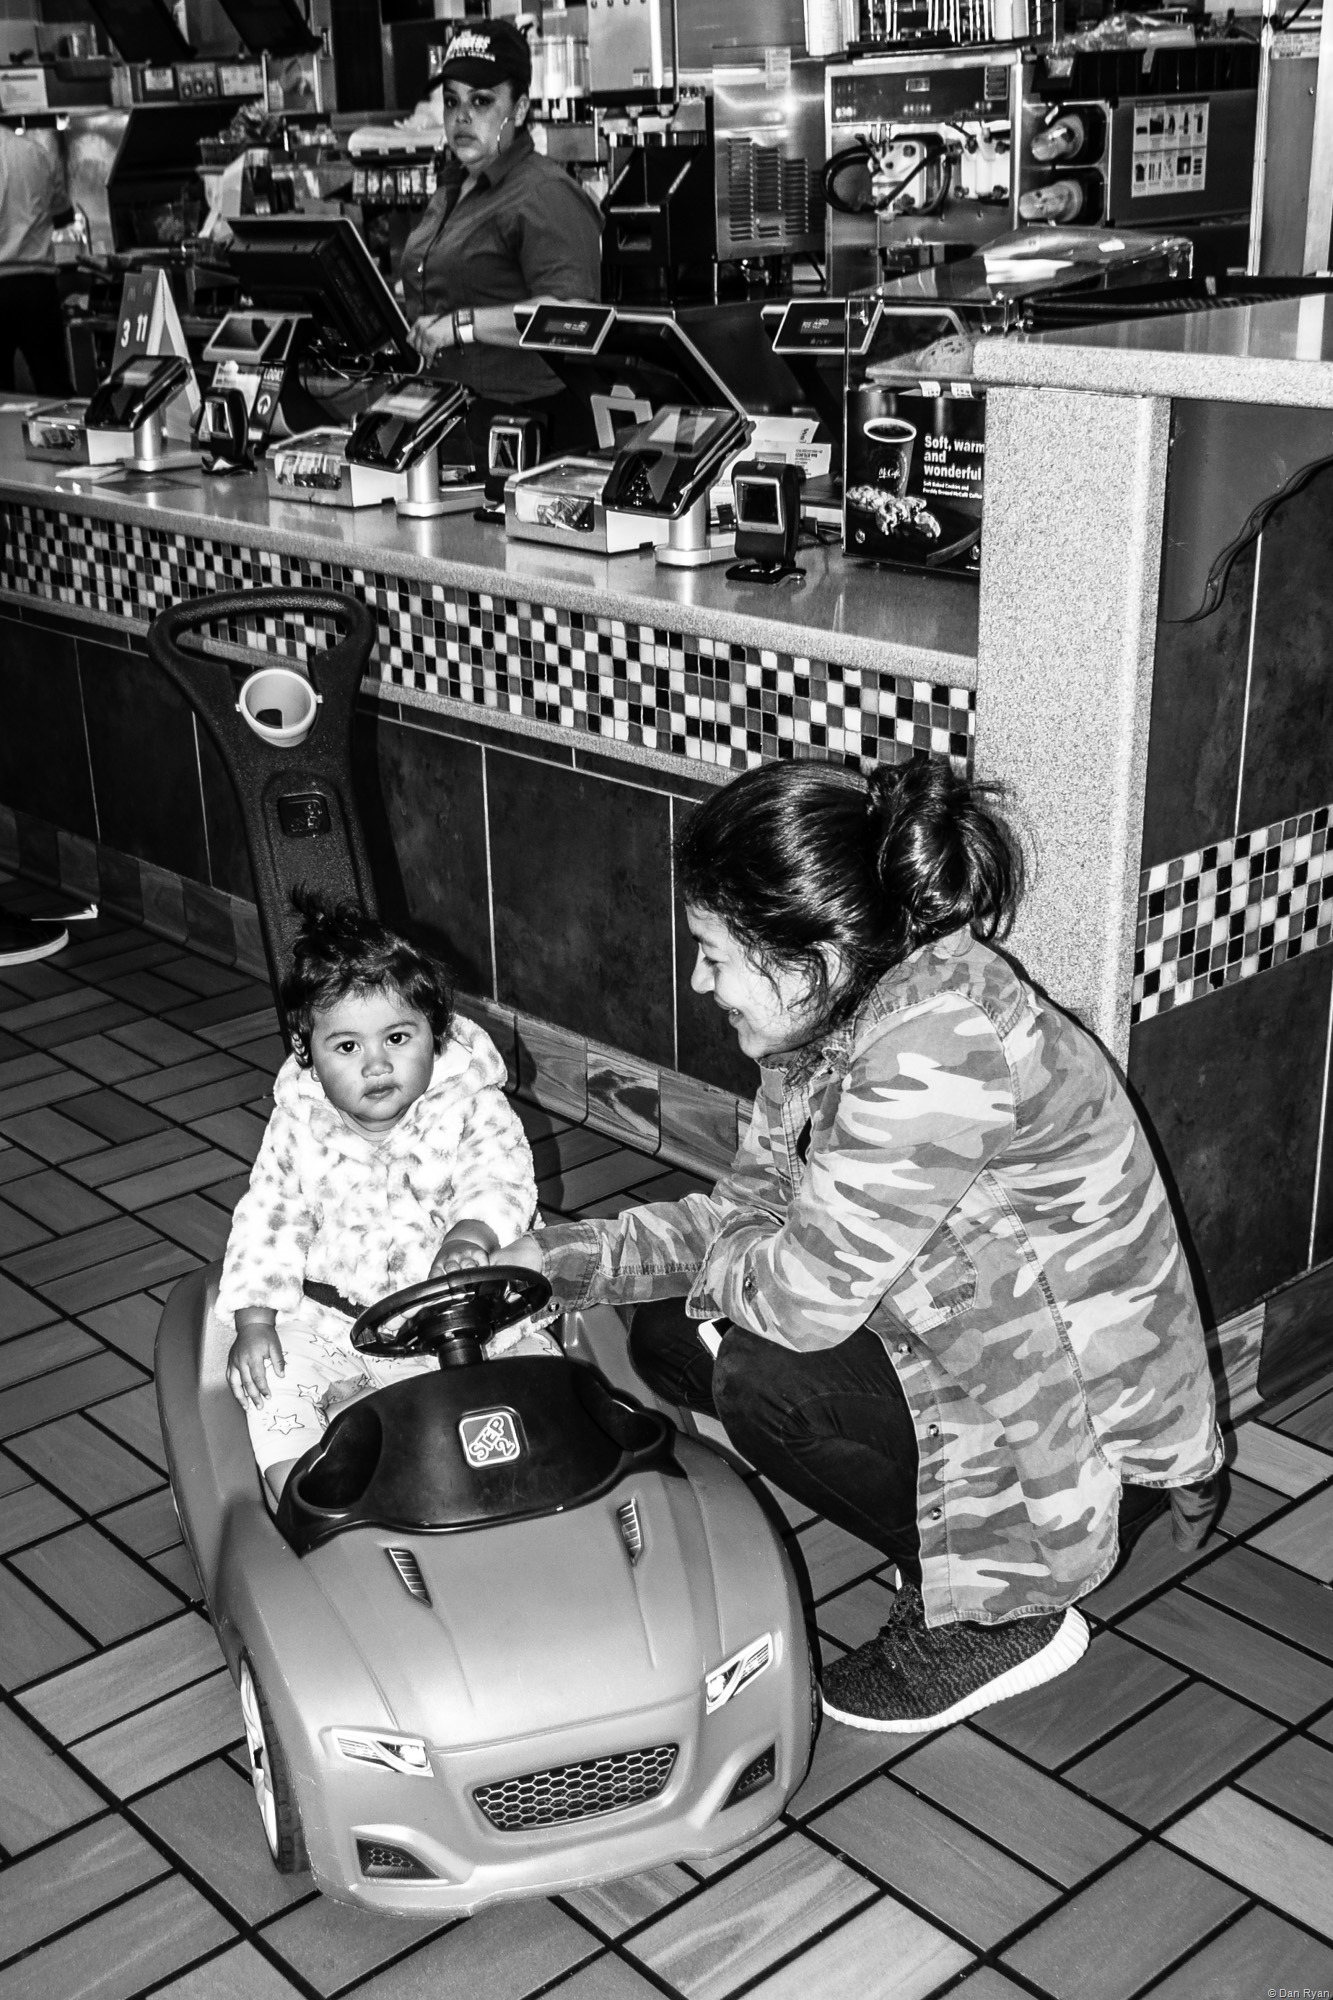 Latina mother and child McDonald's